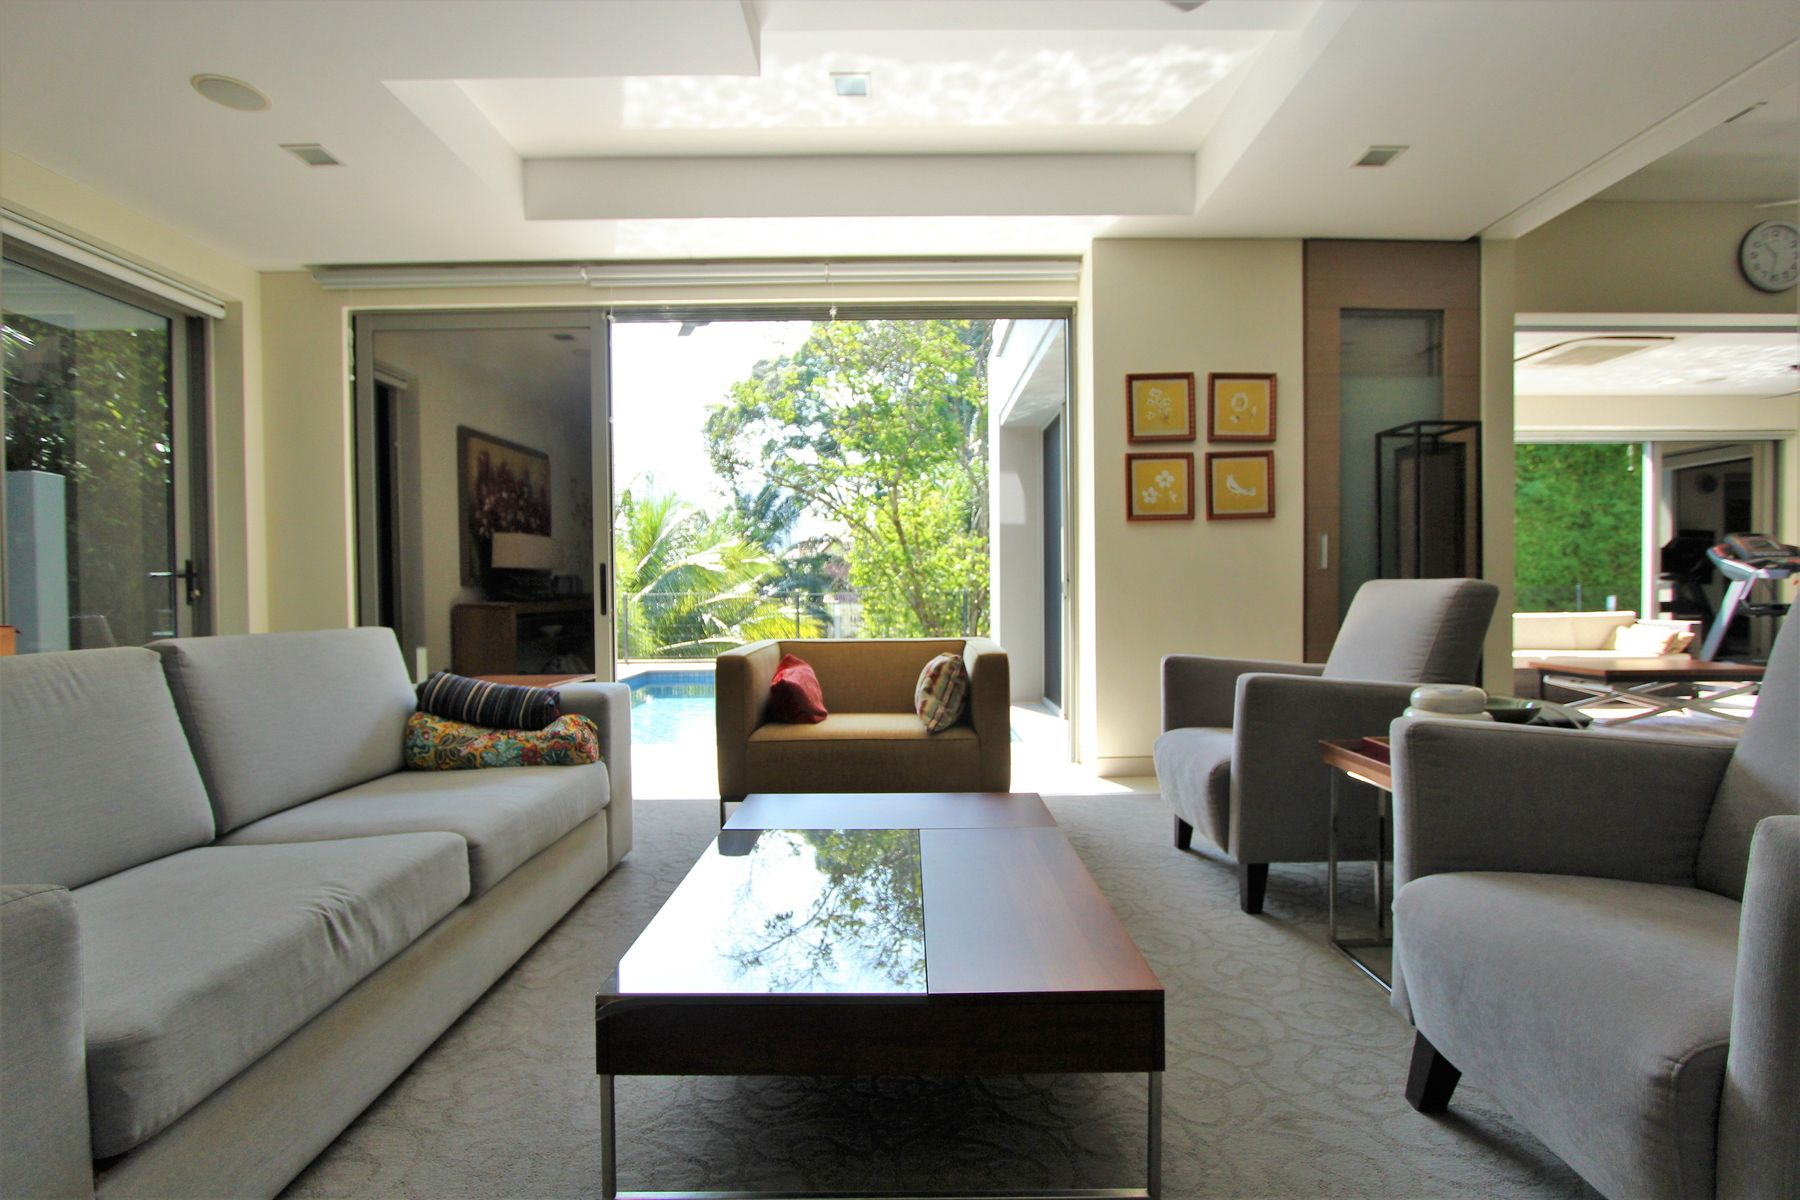 Single Family Homes for Sale at Tranquil Home at Oei Tiong Ham Park Singapore, Cities In Singapore Singapore